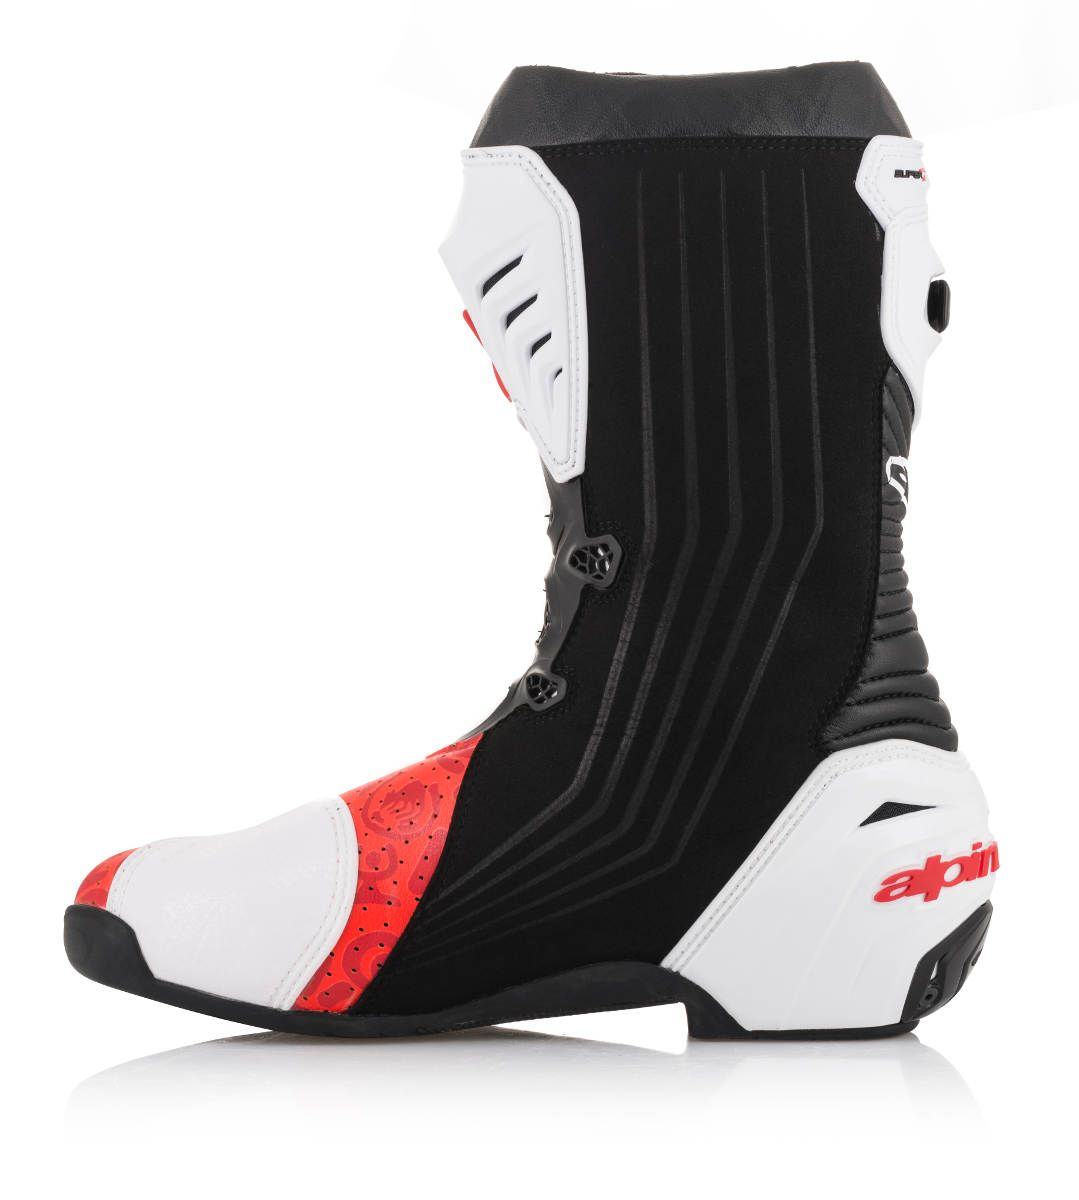 Limited Edition Alpinestars Stoner Supertech R Boots Revealed Boots Racing Boots Motorcycle Boots